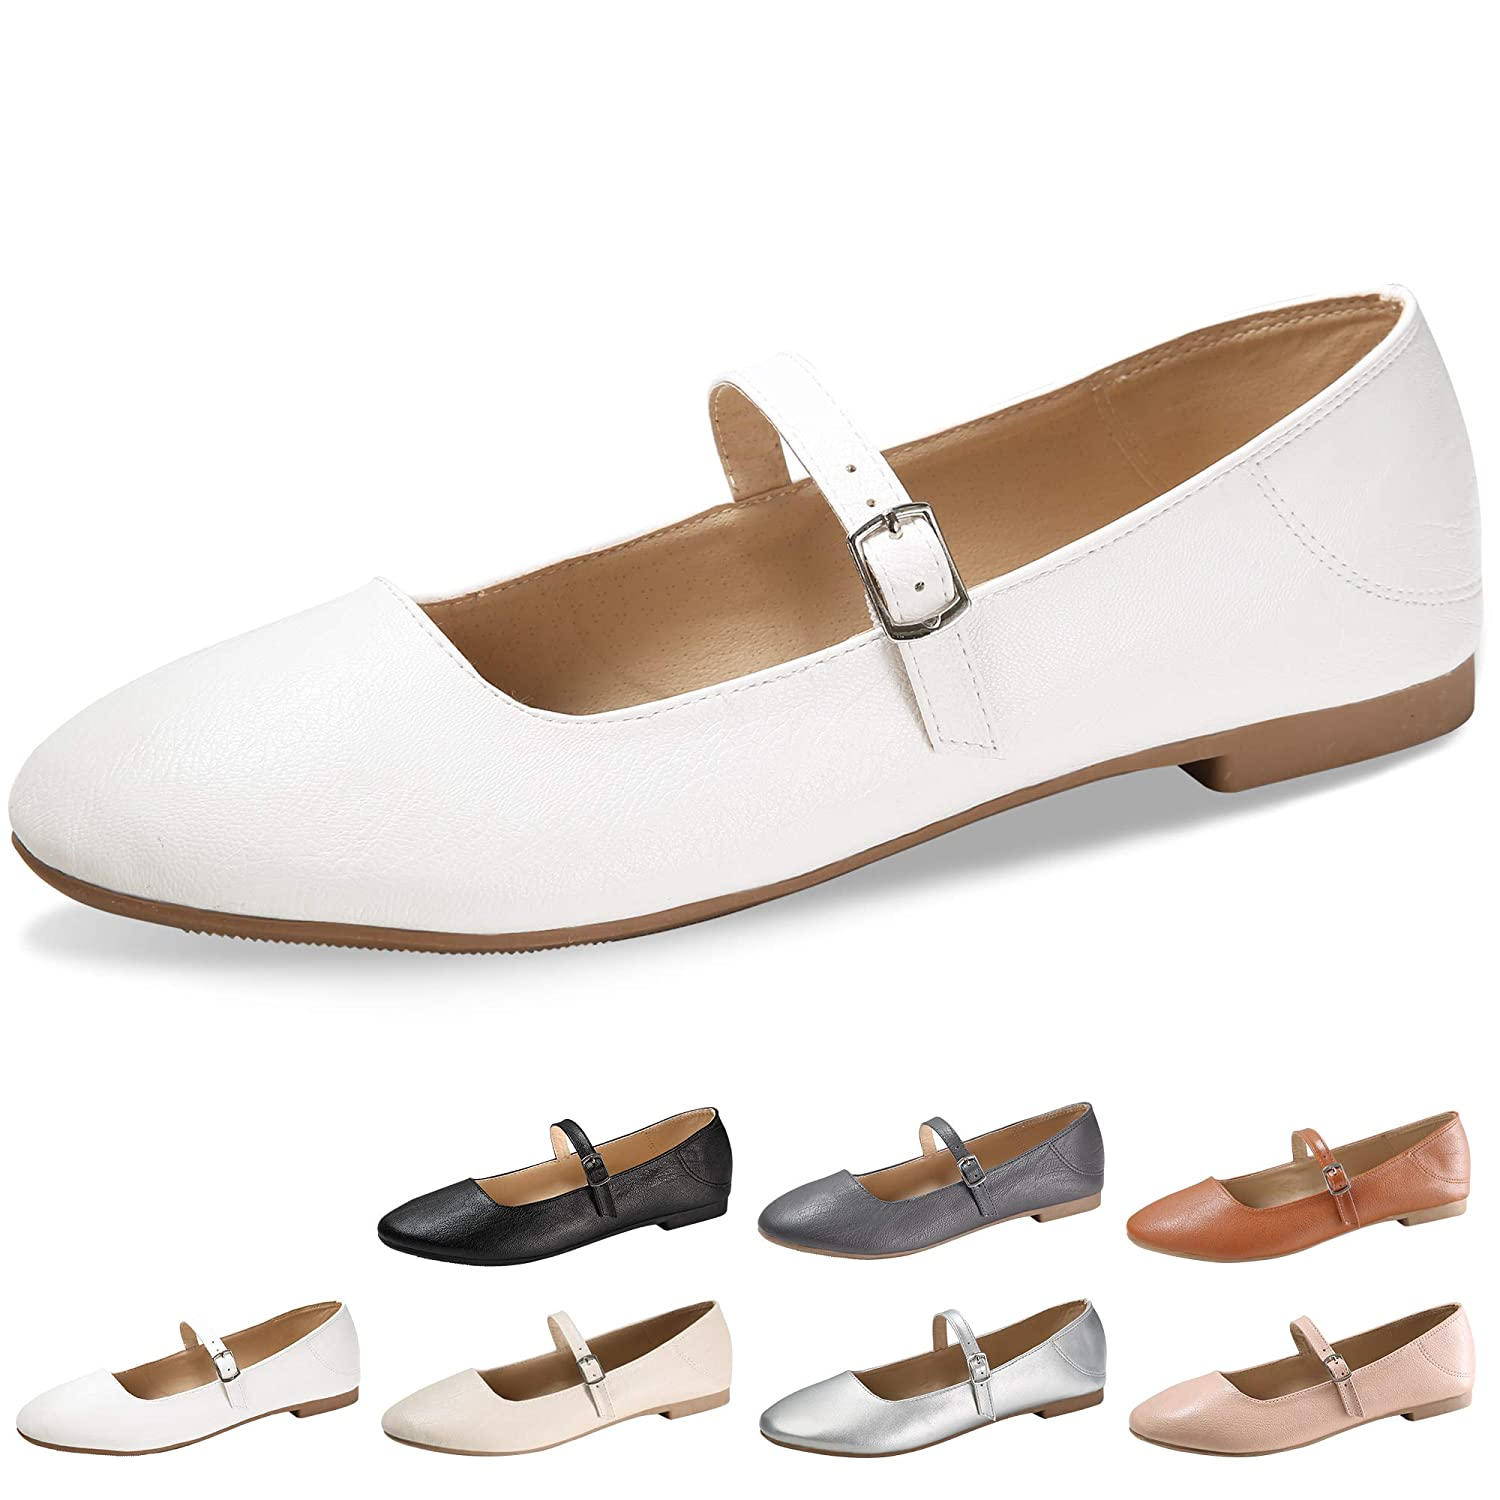 1920s Style Shoes CINAK Flats Mary Jane Shoes Womens Casual Comfortable Walking Classic Buckle Ankle Strap Style Ballet Slip On $21.99 AT vintagedancer.com